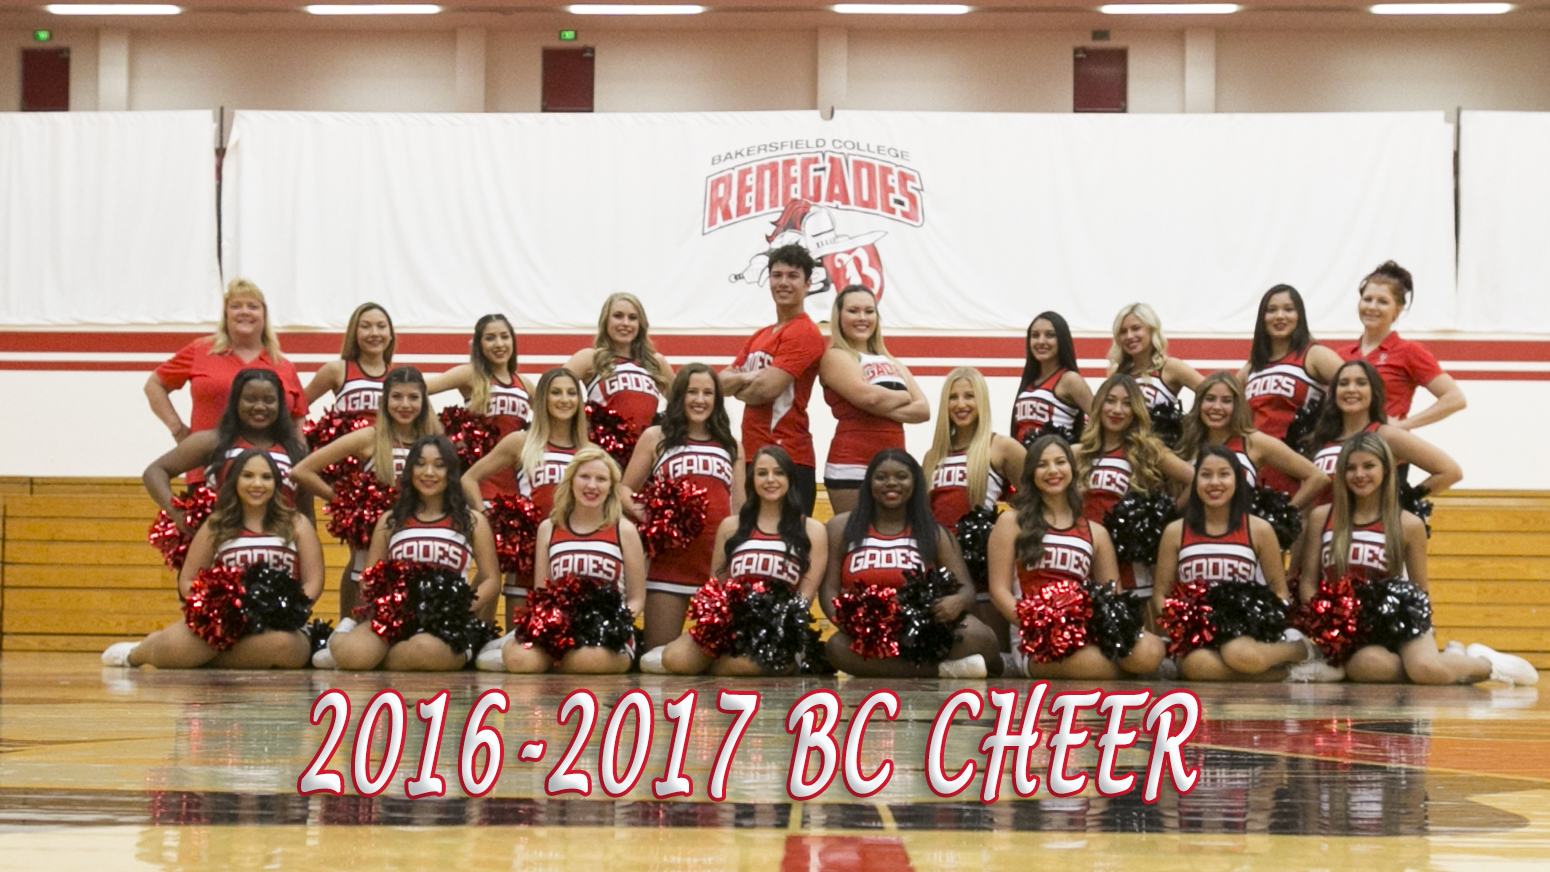 team picture of cheer